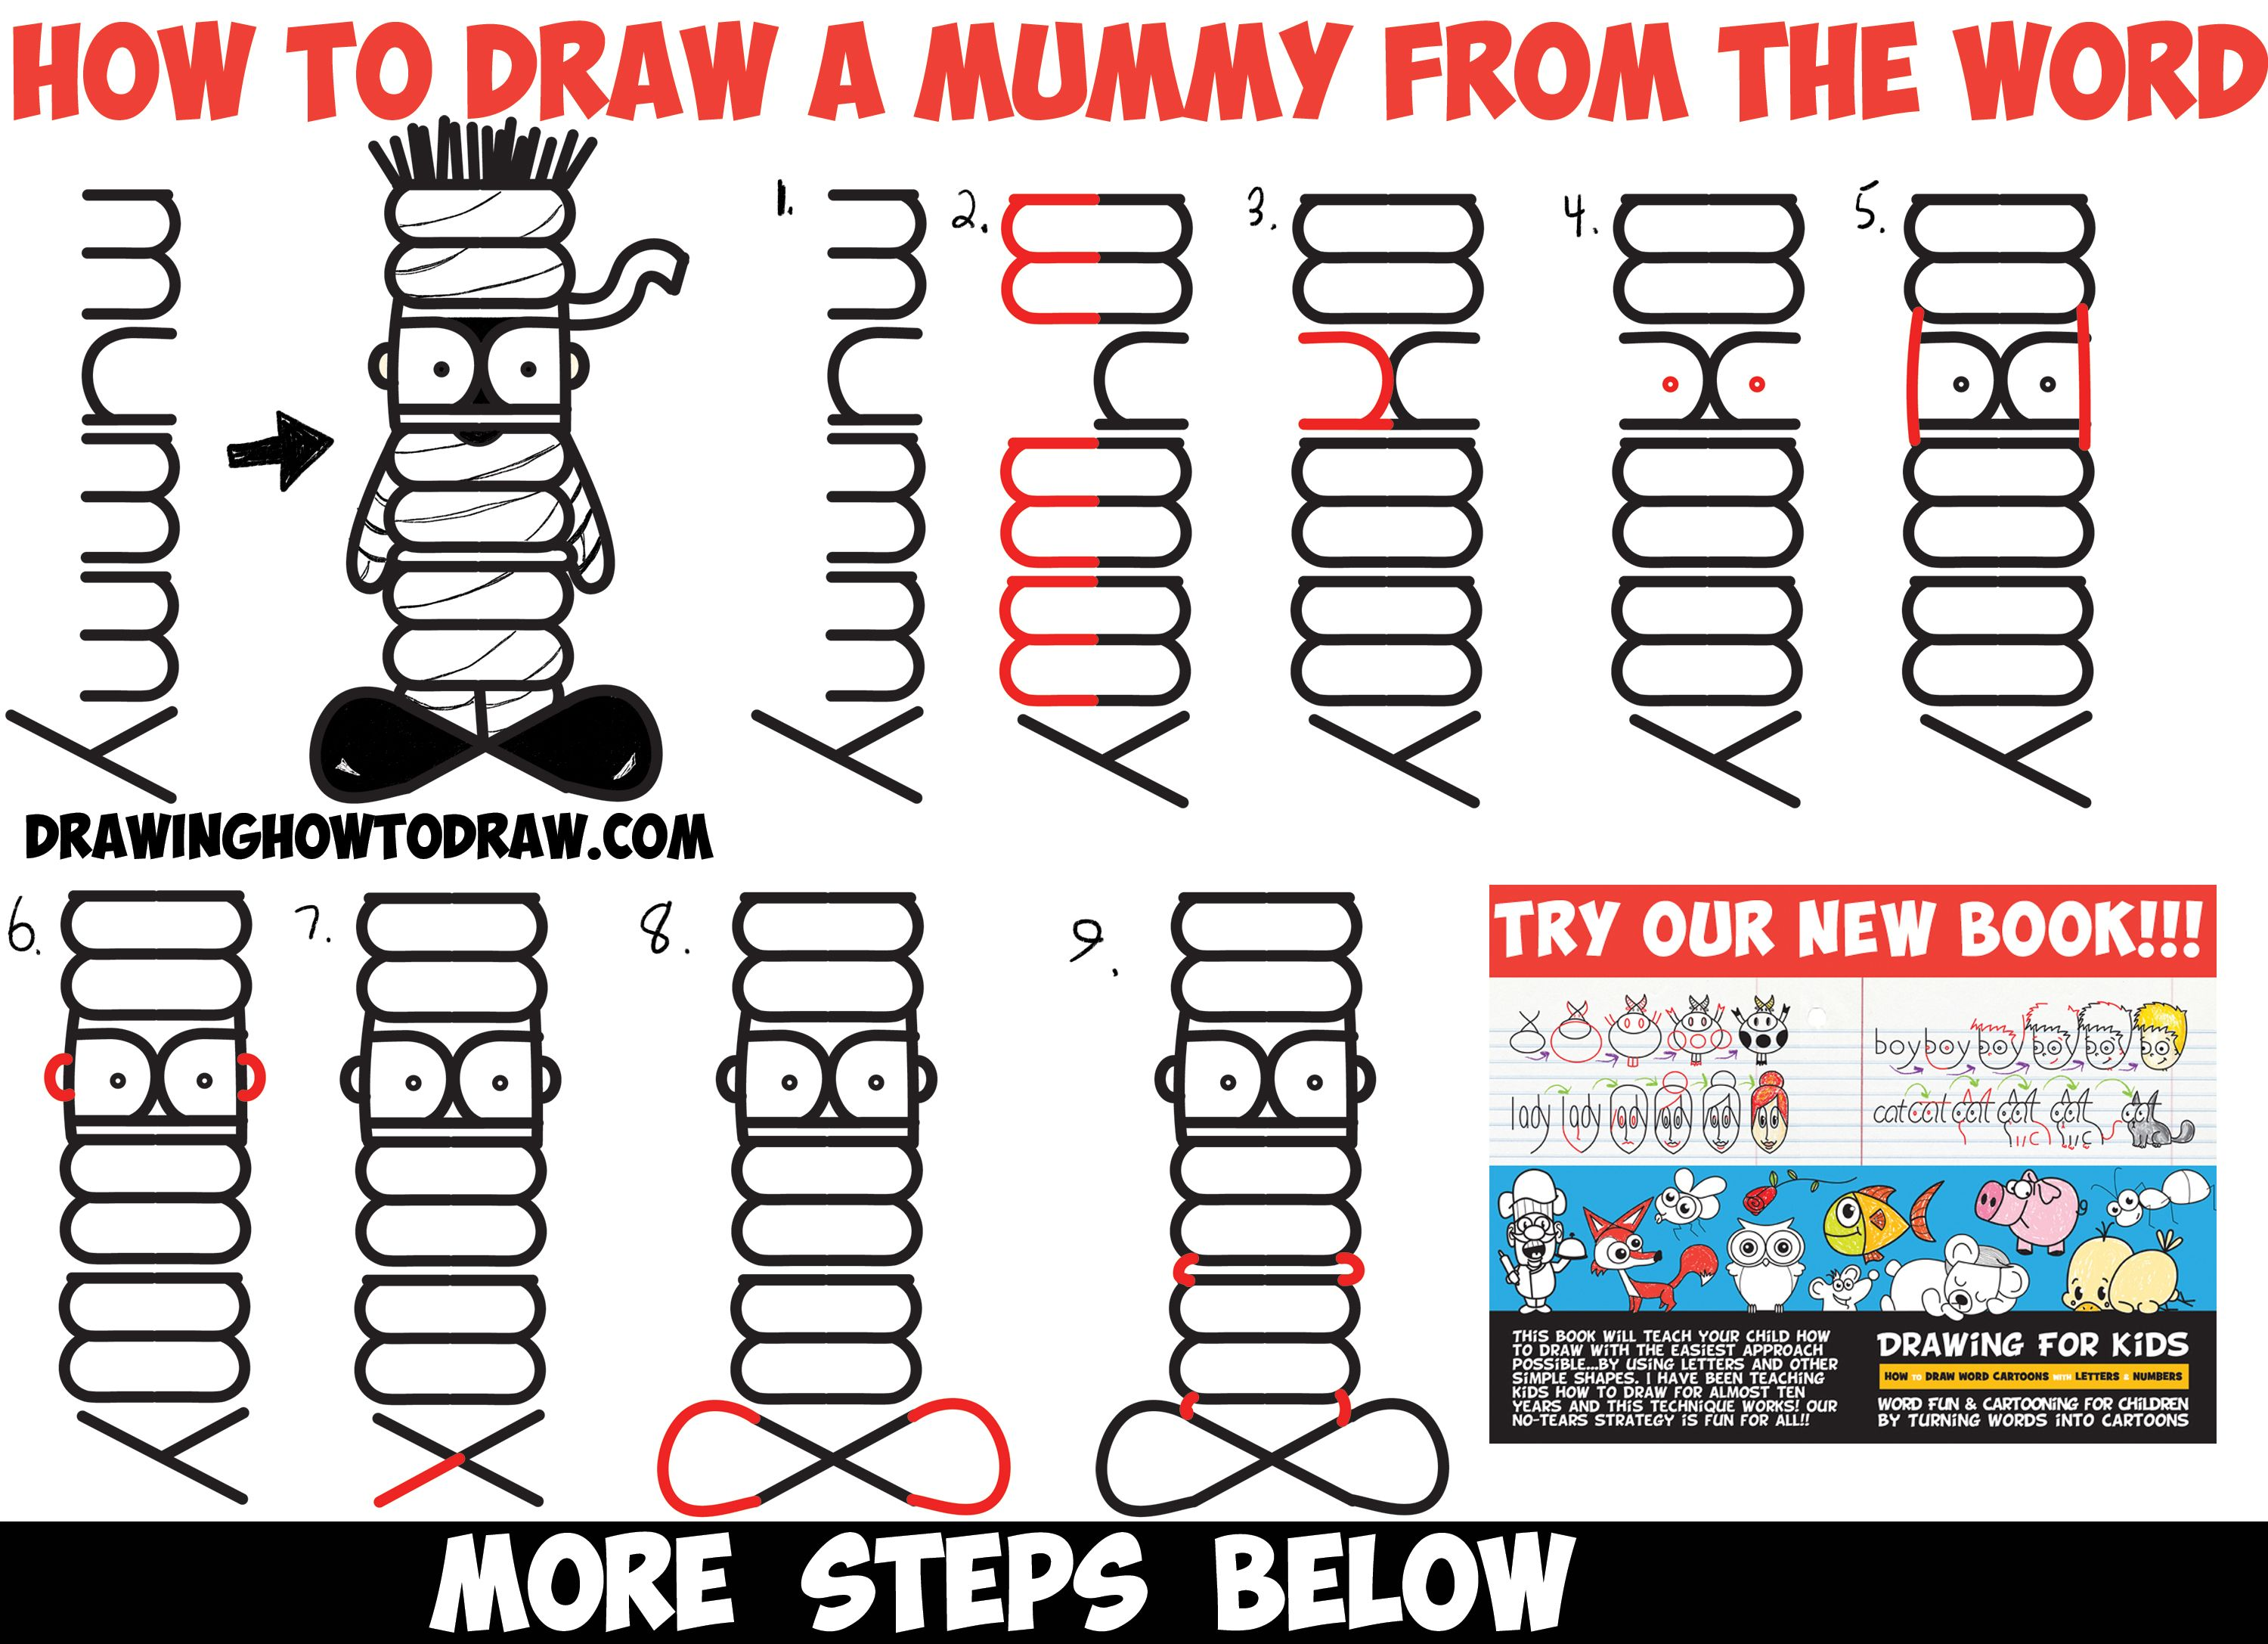 how to draw a cartoon mummy word toon cartoon easy step by